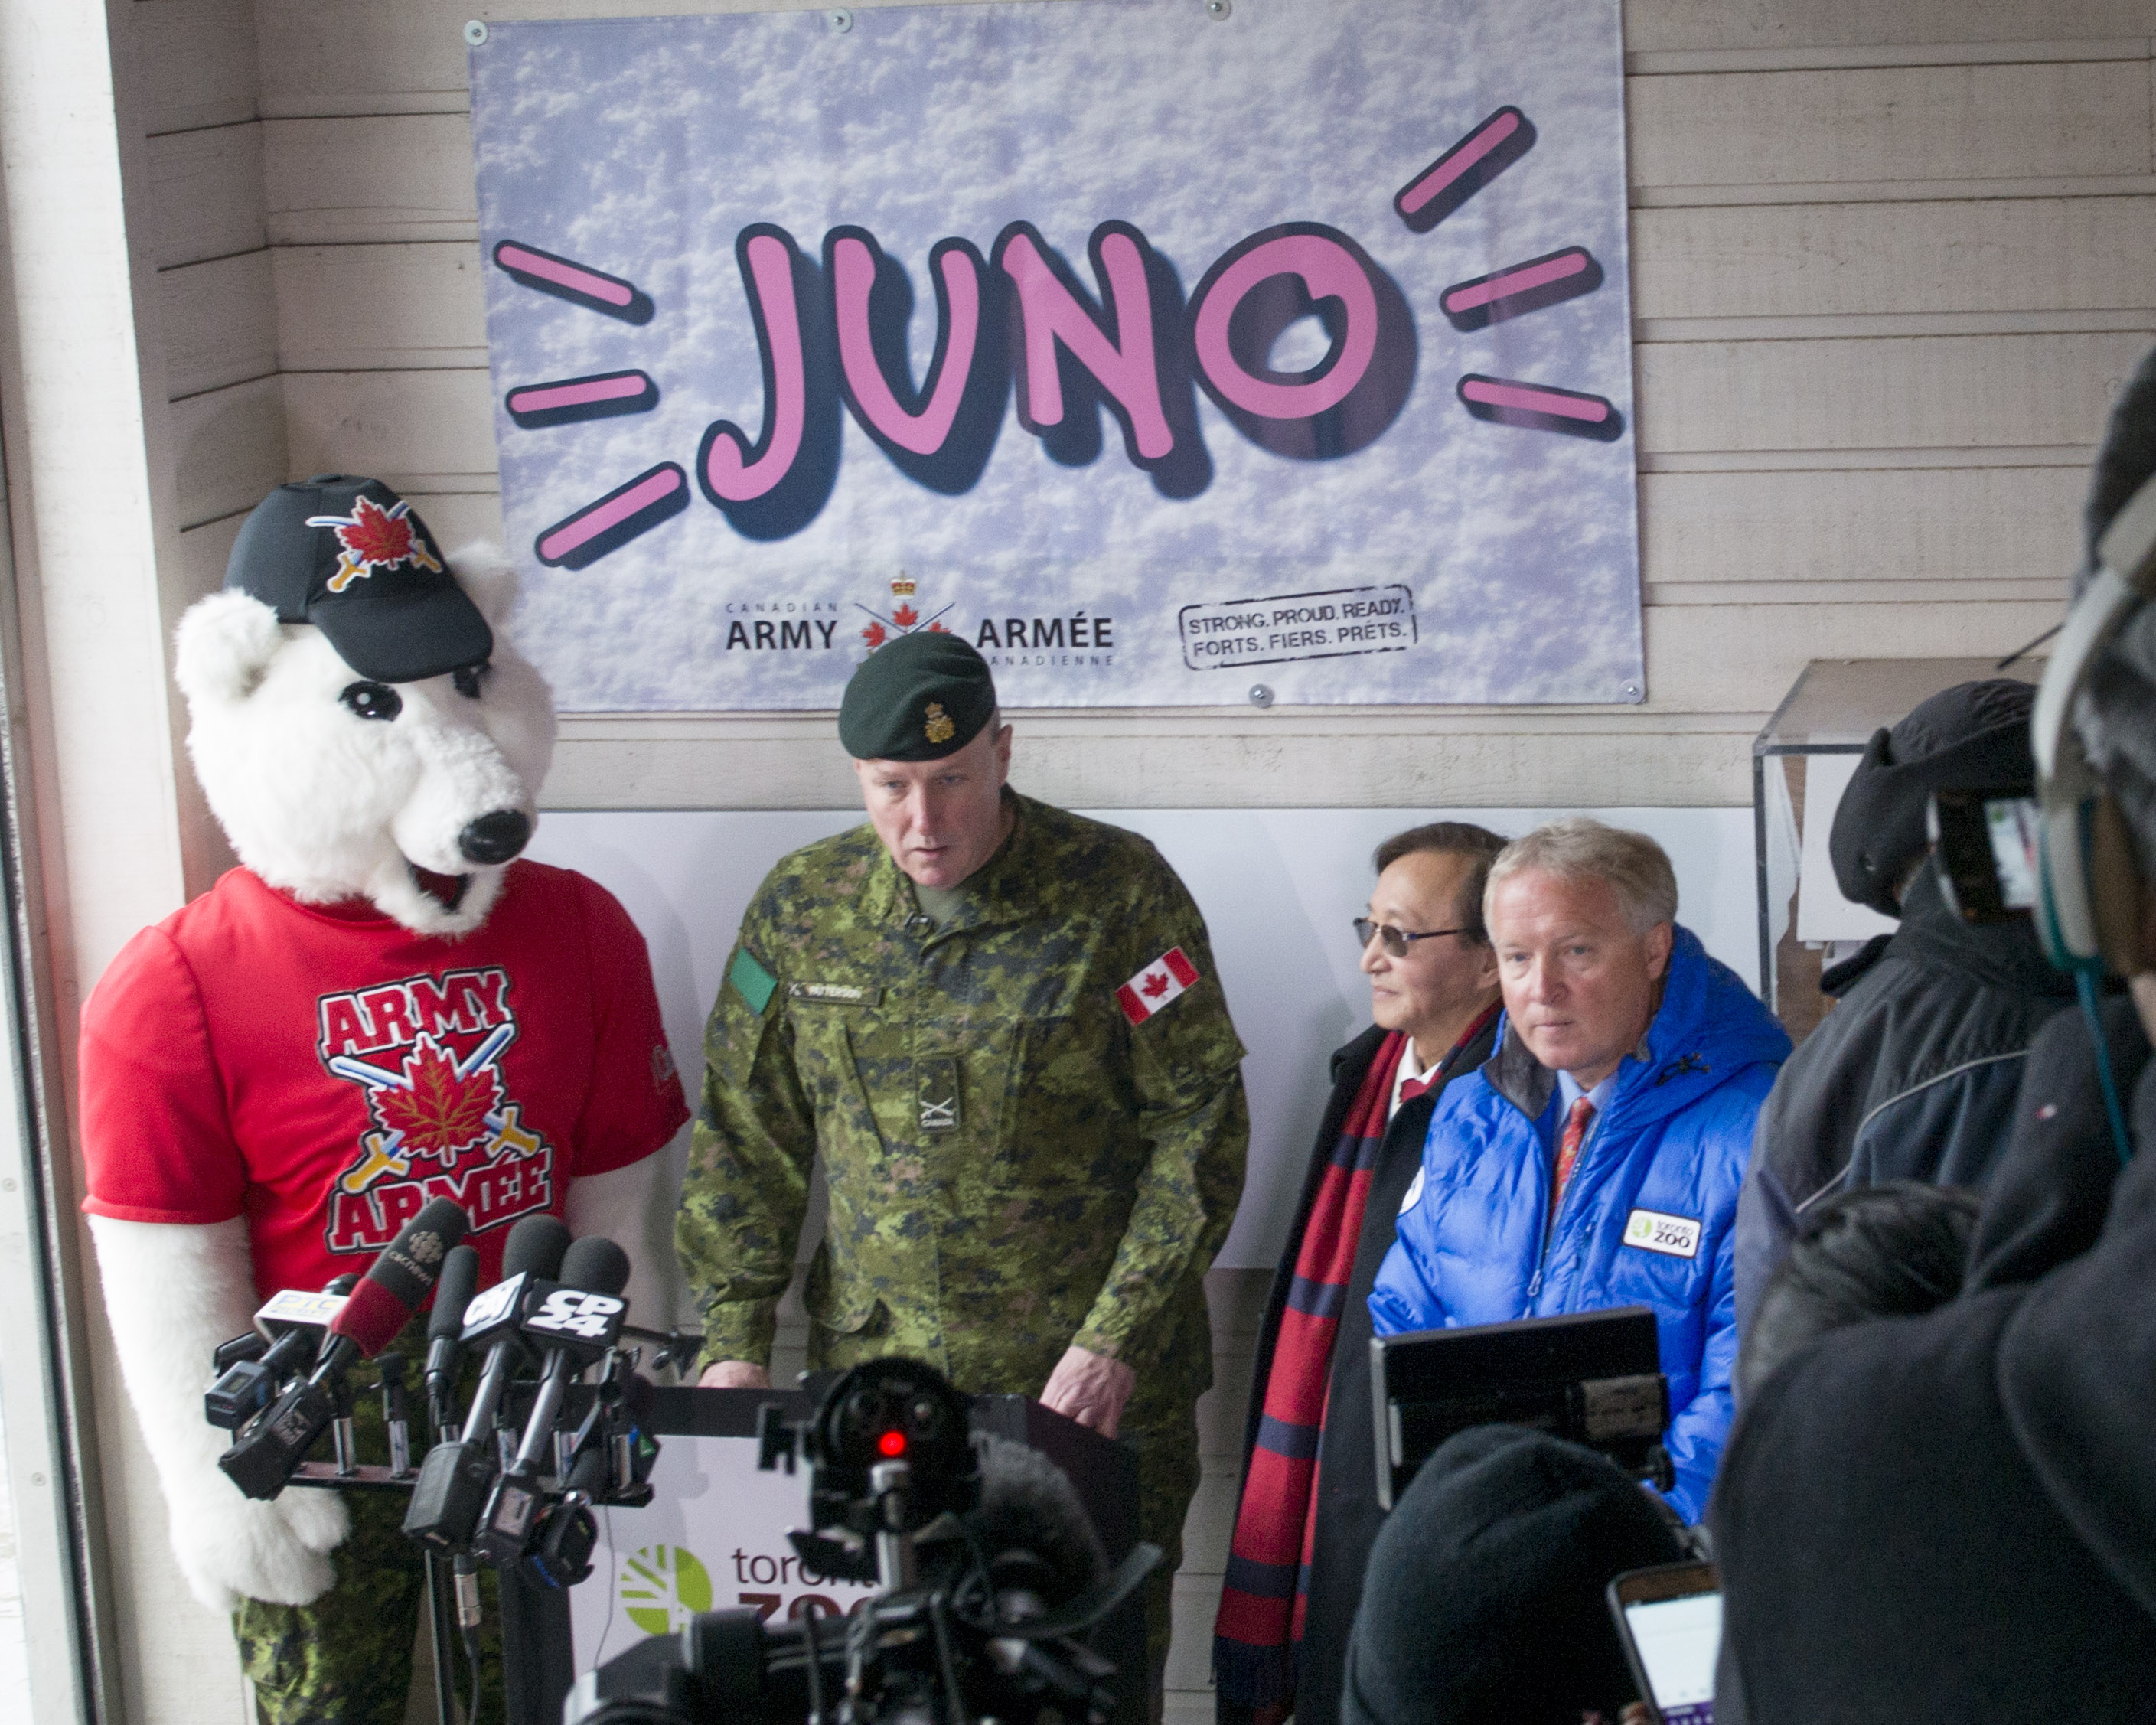 Brigadier-General David Patterson, Deputy Commander of the 4th Canadian Division, speaks on behalf of the 4th Canadian Division Commander during the welcoming of Private Juno, the polar bear cub, at Toronto Zoo on February 25, 2016. (Left to right: Juno the Army Mascot, BGen Patterson, Raymond Cho, Chair, Toronto Zoo and John Tracogna, CEO, Toronto Zoo.). Photo by: MCpl Precious Carandang, 4th Canadian Division Public Affairs 2016 DND-MDN Canada.